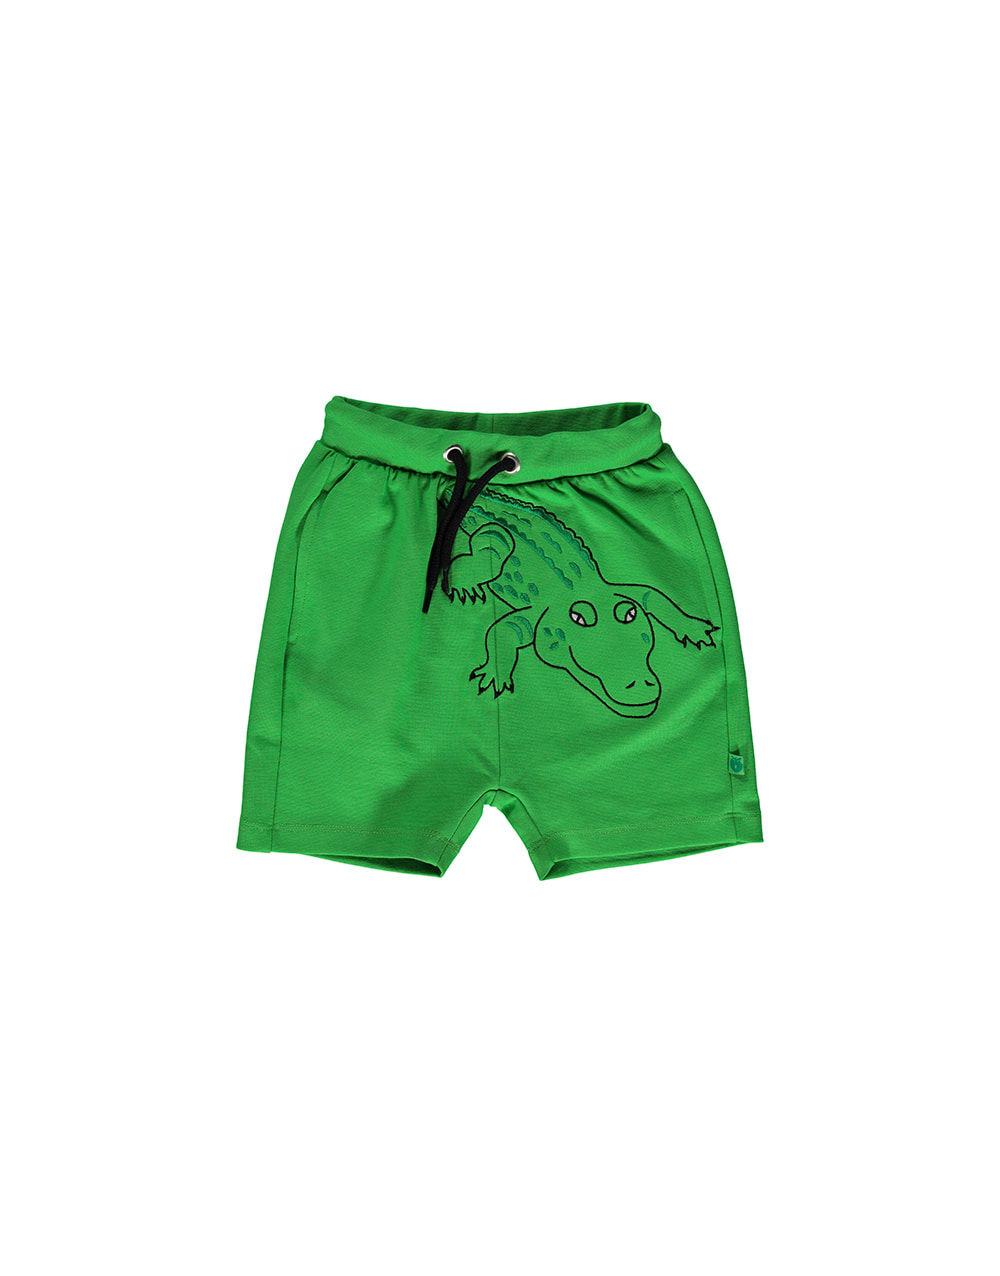 SMAFOLK Shorts with Crocodile  Green